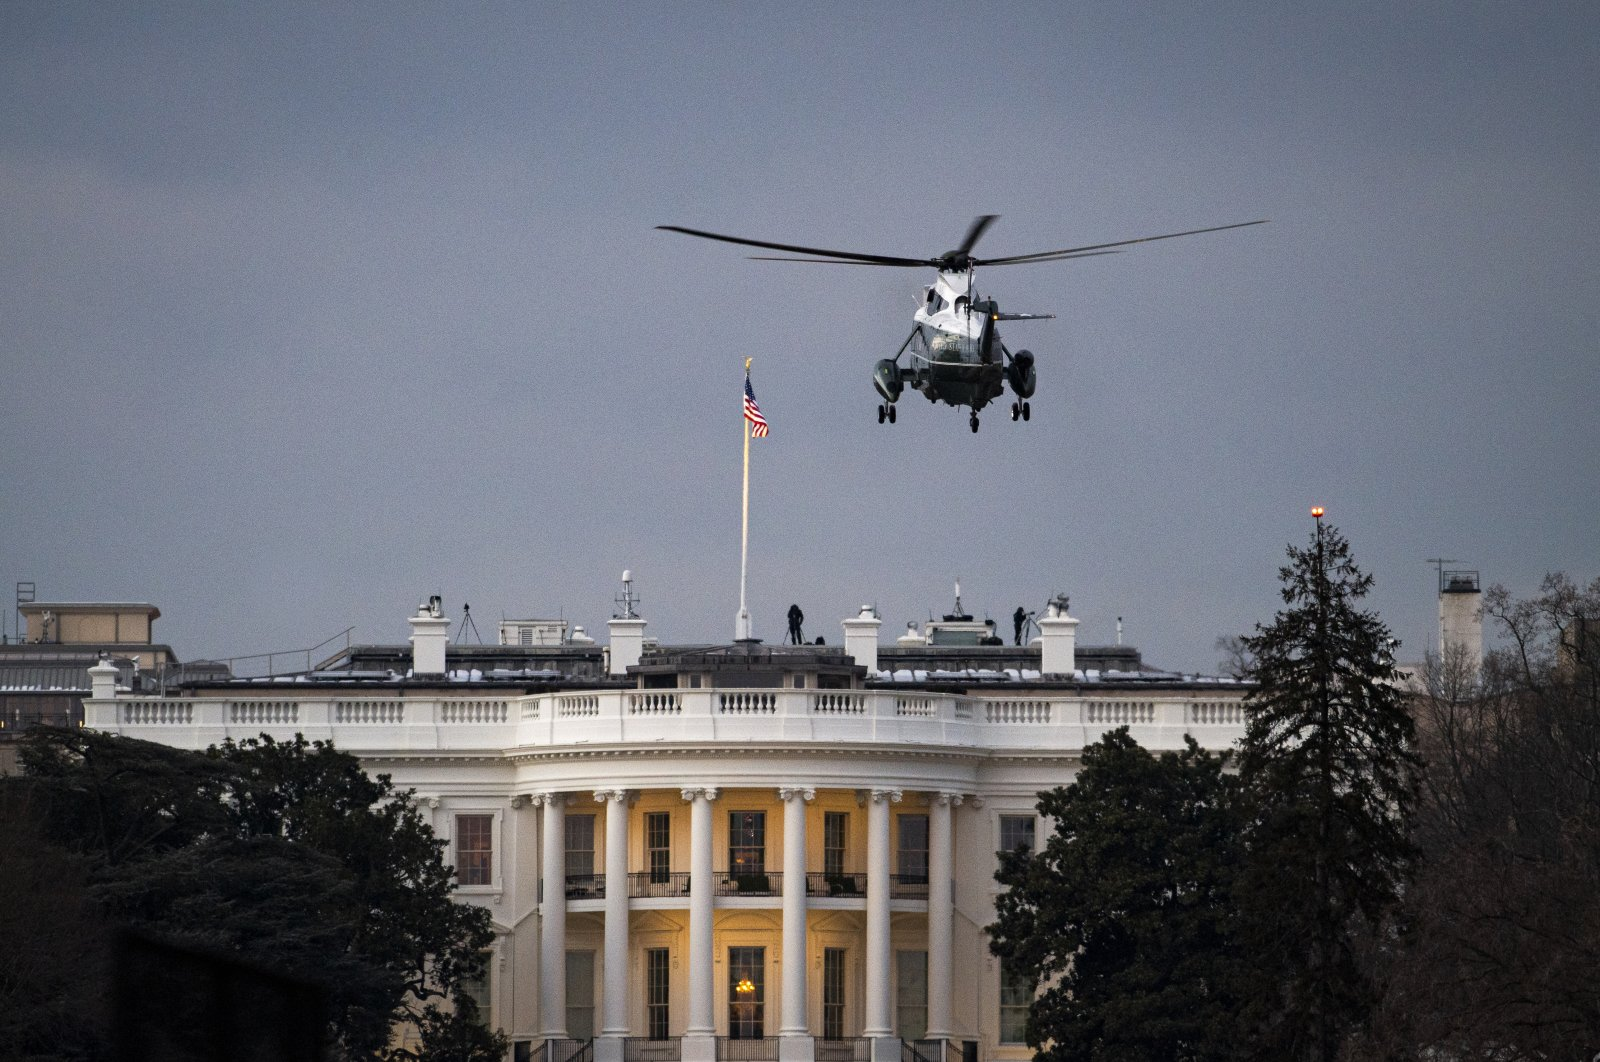 Marine One, with U.S. President Joe Biden on board, approaches the White House, Washington, D.C., the U.S., Feb. 19, 2021. (Photo by Getty Images)